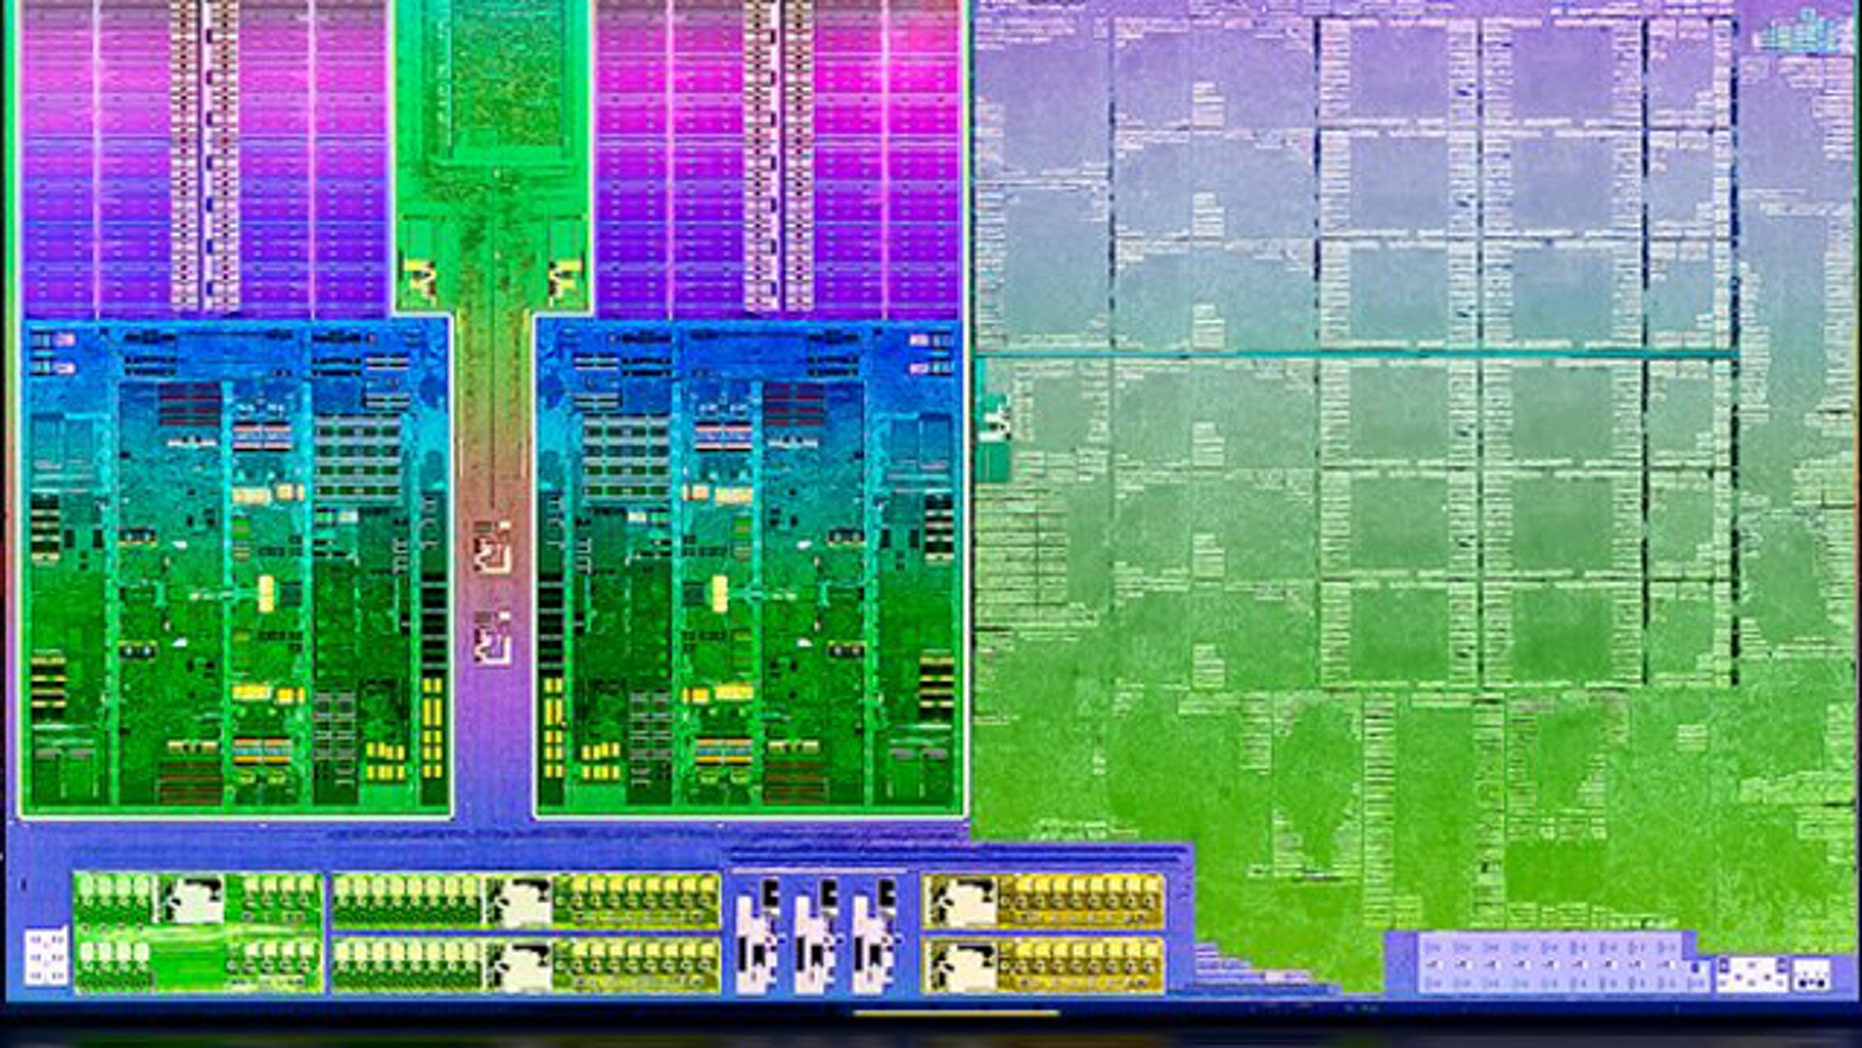 """May 14, 2012: A portion of the """"die shot,"""" or close up photograph, reveals some of the parts making up the new Trinity processor from AMD."""